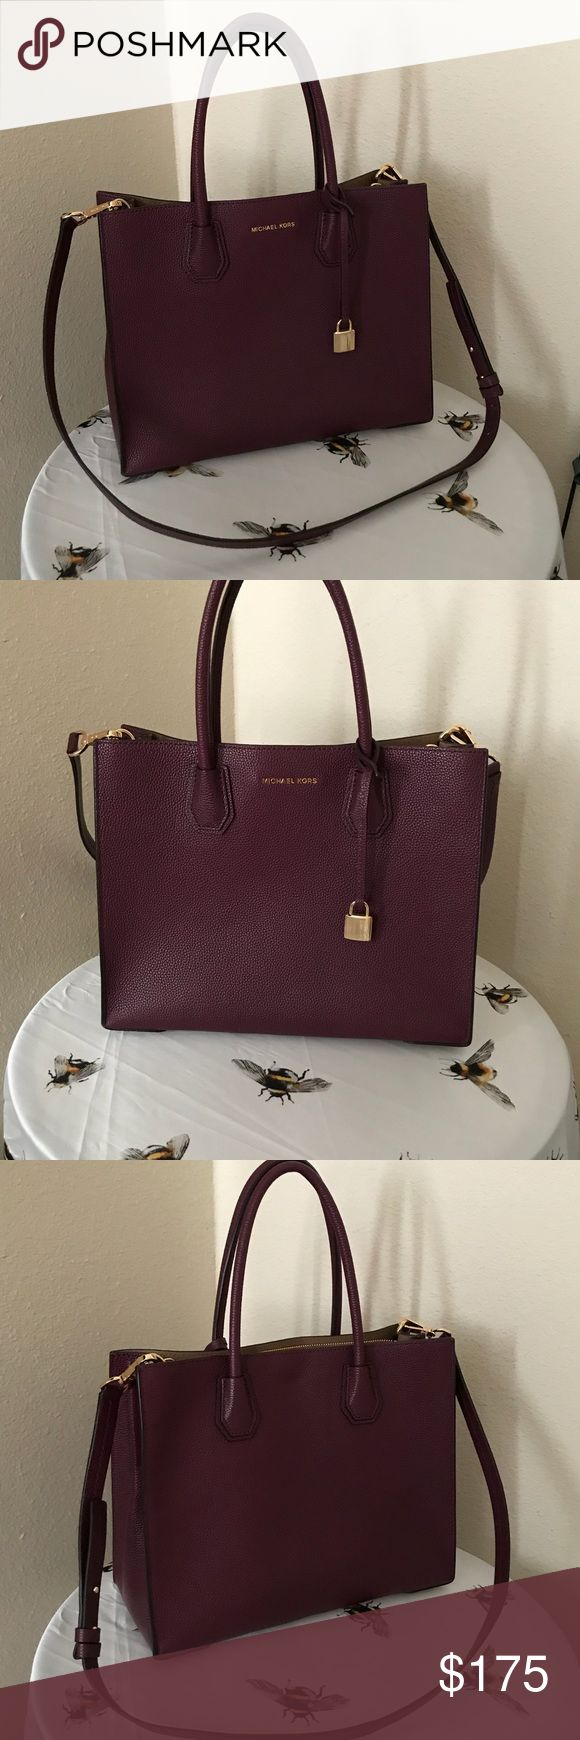 """Michael Kors Mercer Large Convertible Tote, Plum Like new Michael Kors Studio Mercer tote! Pebble leather; unlined Gold hardware Large sized bag; 11-1/4""""W x 8-1/2""""H x 5""""D 4-1/4""""L double handles; 22""""-25""""L adjustable strap Open top 1 interior zip pocket, 1 open pocket & 1 center zip divider pocket with lining No noticeable scratches or stains, both outside and inside the bag Comes with duster bag Michael Kors Bags Totes"""